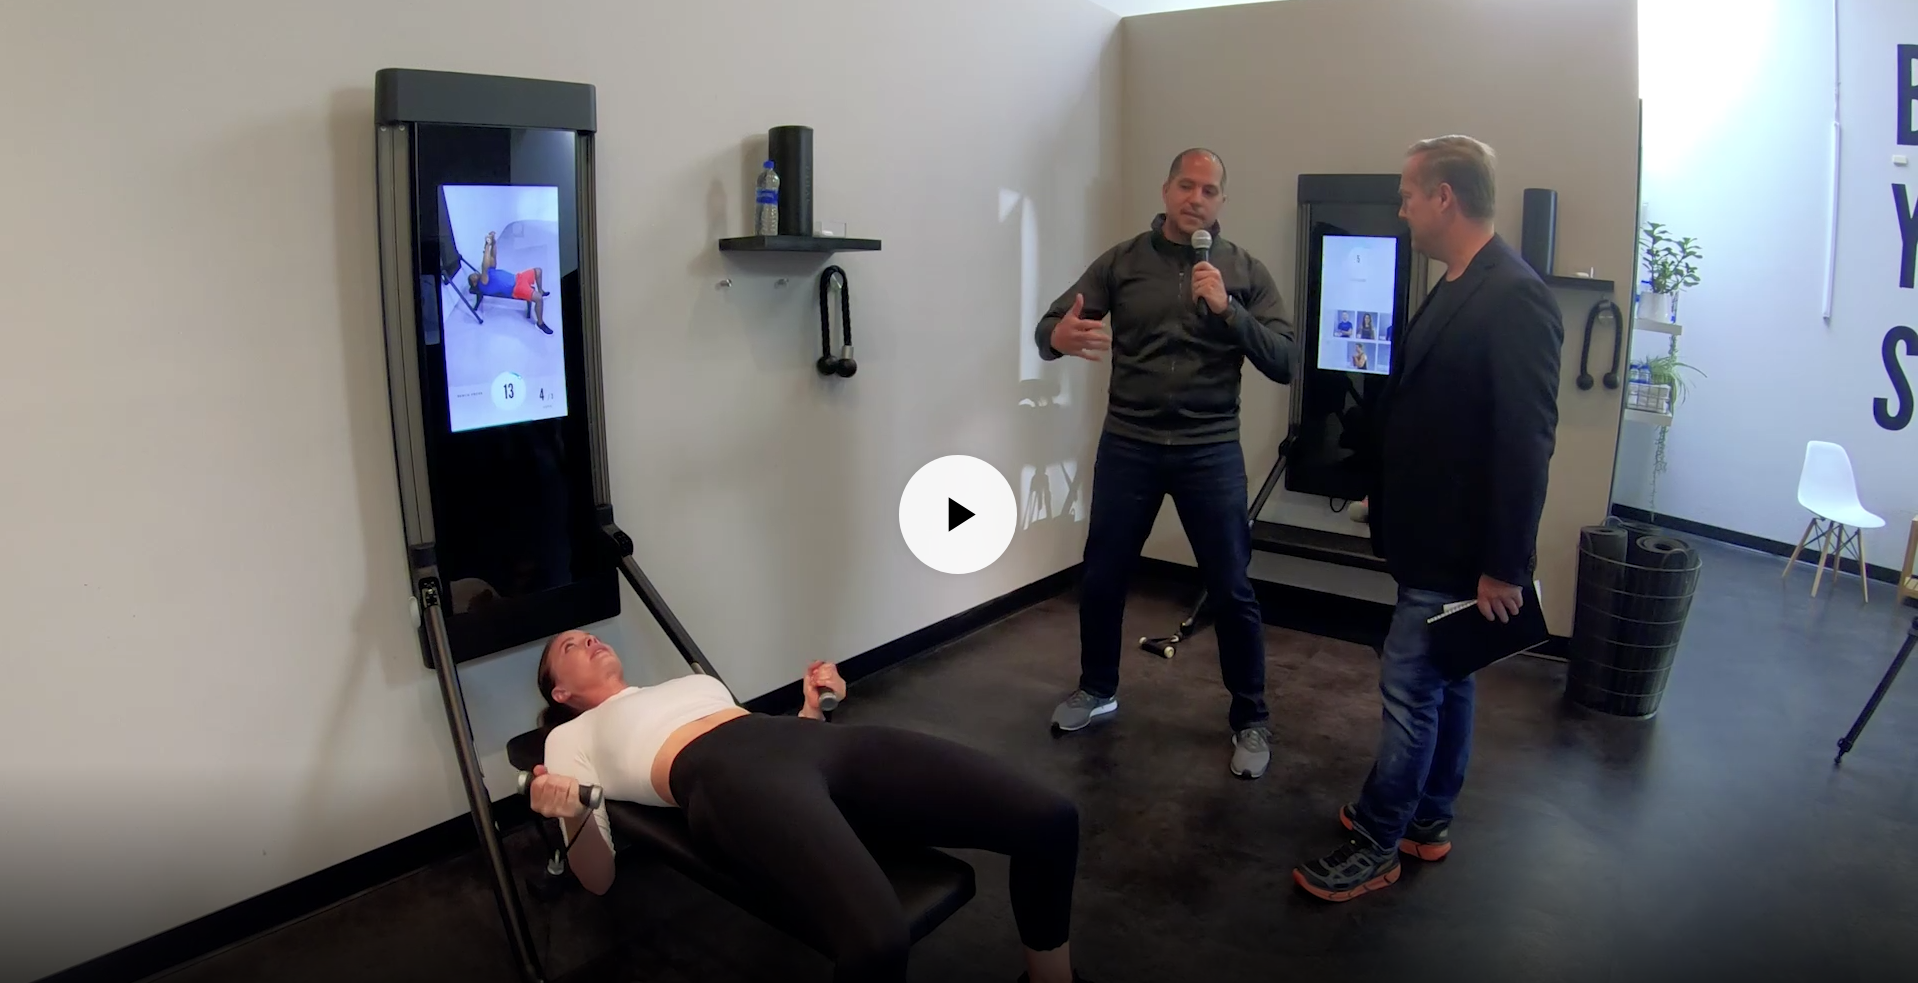 E848: Introducing Tonal smart home fitness center that measures, monitors, instructs & adapts for a personalized full-body workout; CEO/founder Aly Orady demos his invention & vision for the future of health & fitness